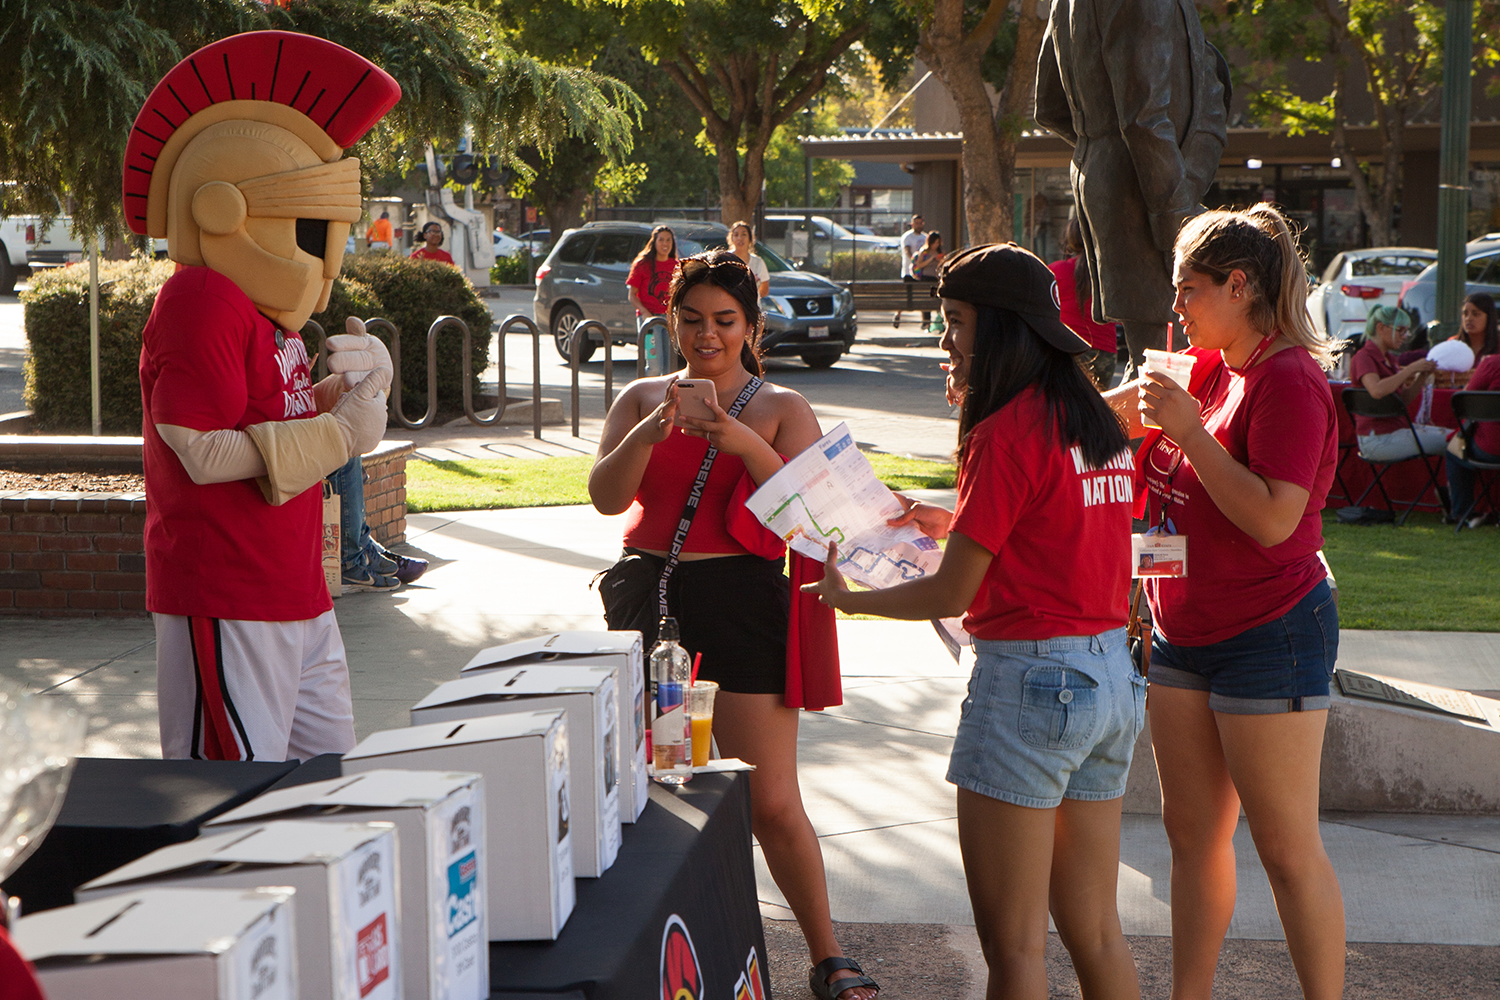 Three female students conversing with Titus mascot.